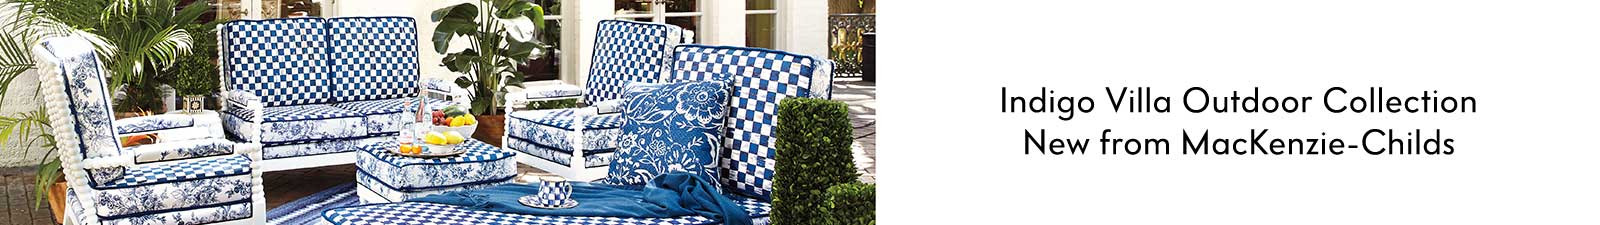 Indigo Villa Outdoor Collection New from MacKenzie-Childs